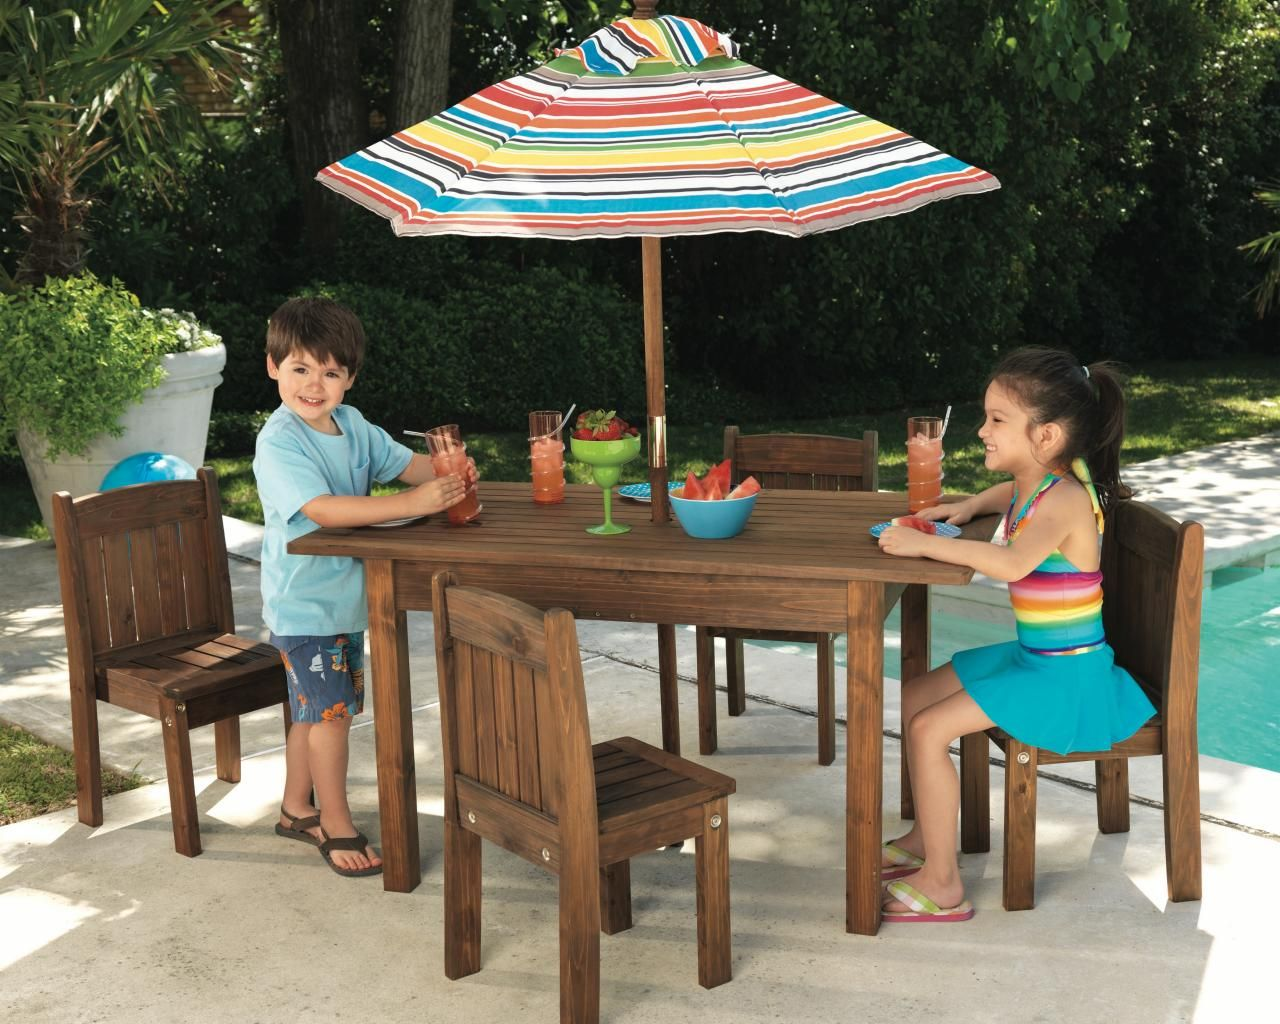 Outdoor Room Ideas For Kids Kids Outdoor Furniture Outdoor Table Settings Kids Table Chairs